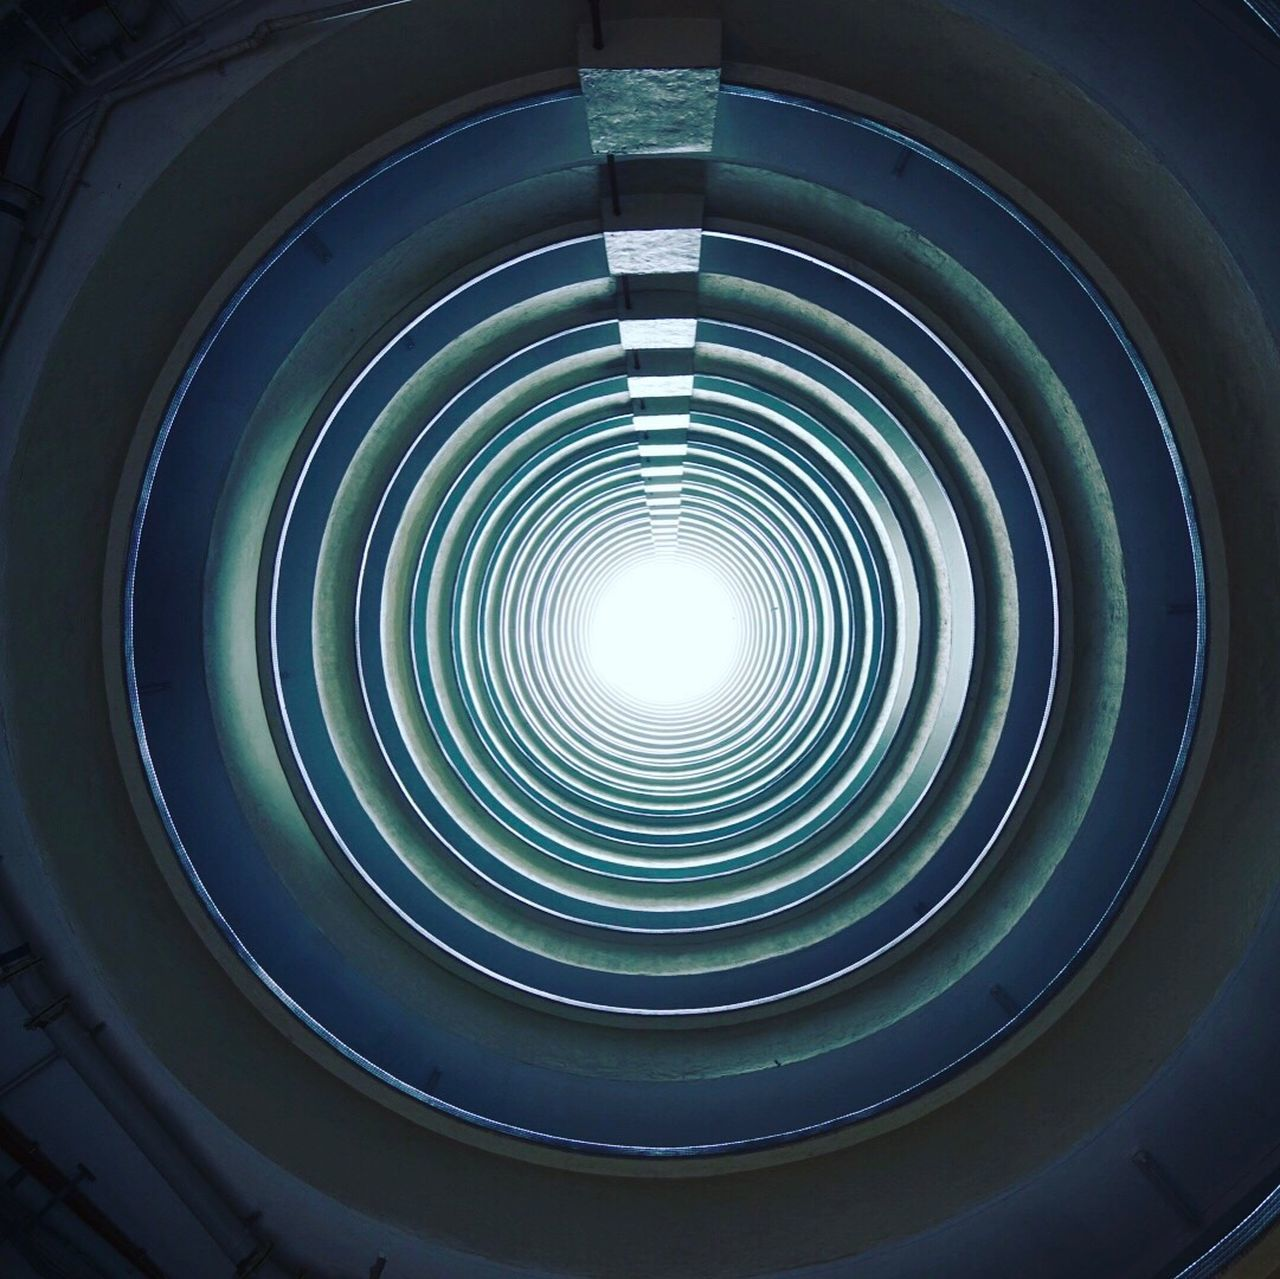 circle, built structure, architecture, no people, indoors, low angle view, day, close-up